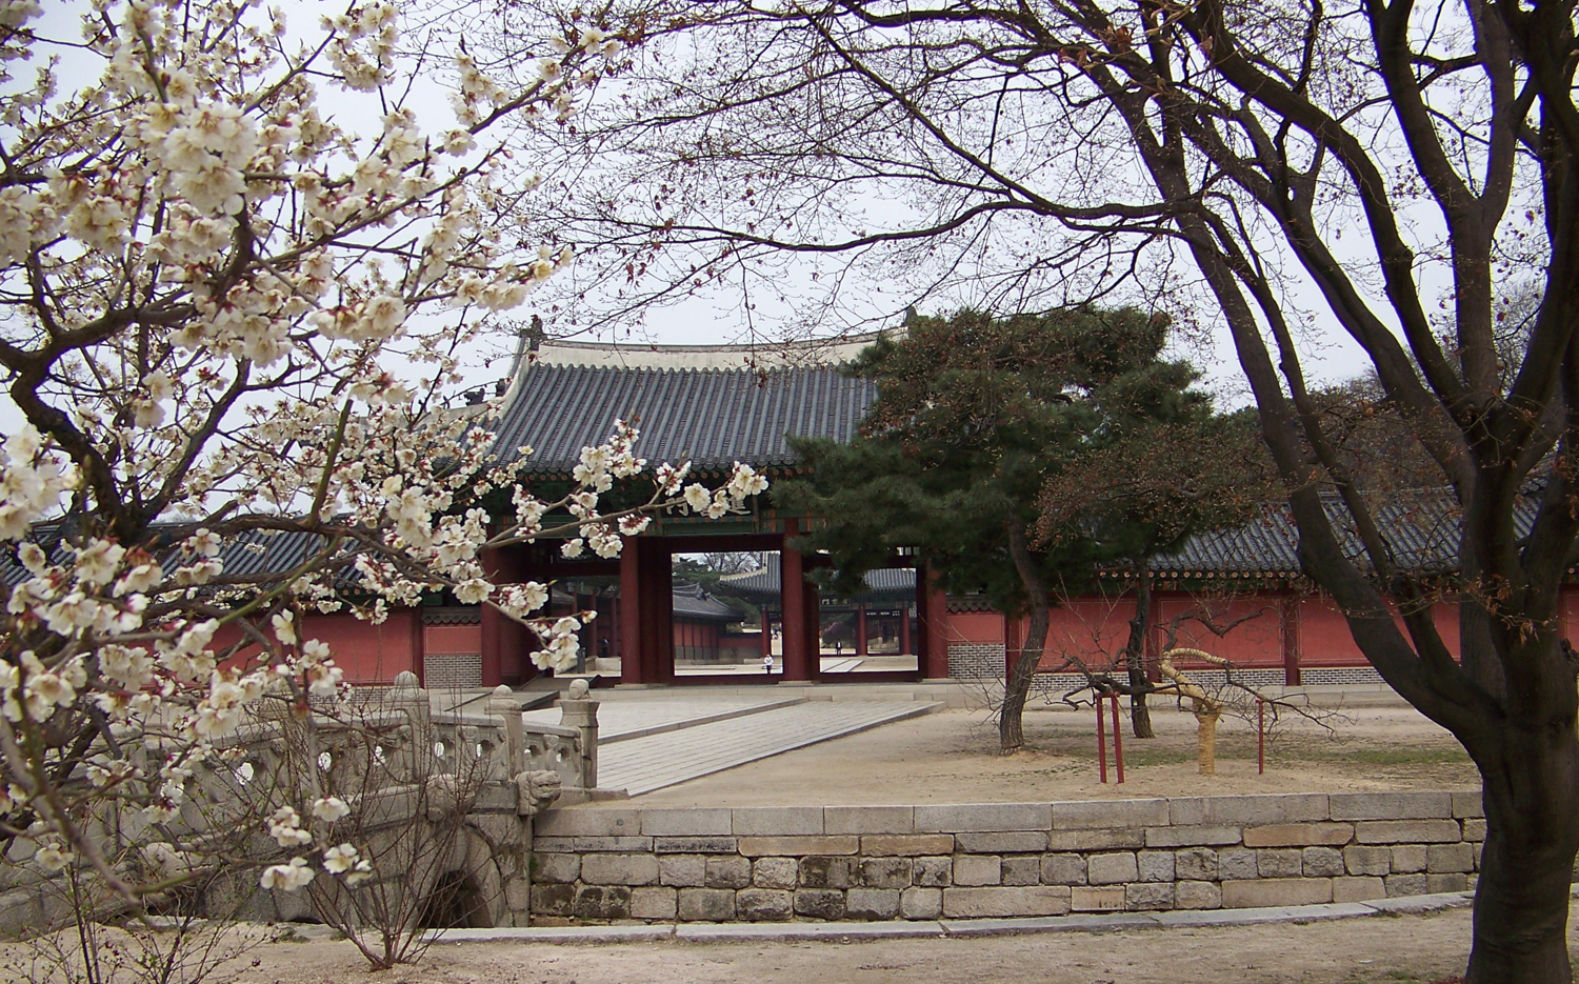 """April is a beautiful time in Korea. Cherry blossoms and a warm breeze make a stroll through the Changdeokgung Palace, one of several traditional palaces in the heart of Seoul."""